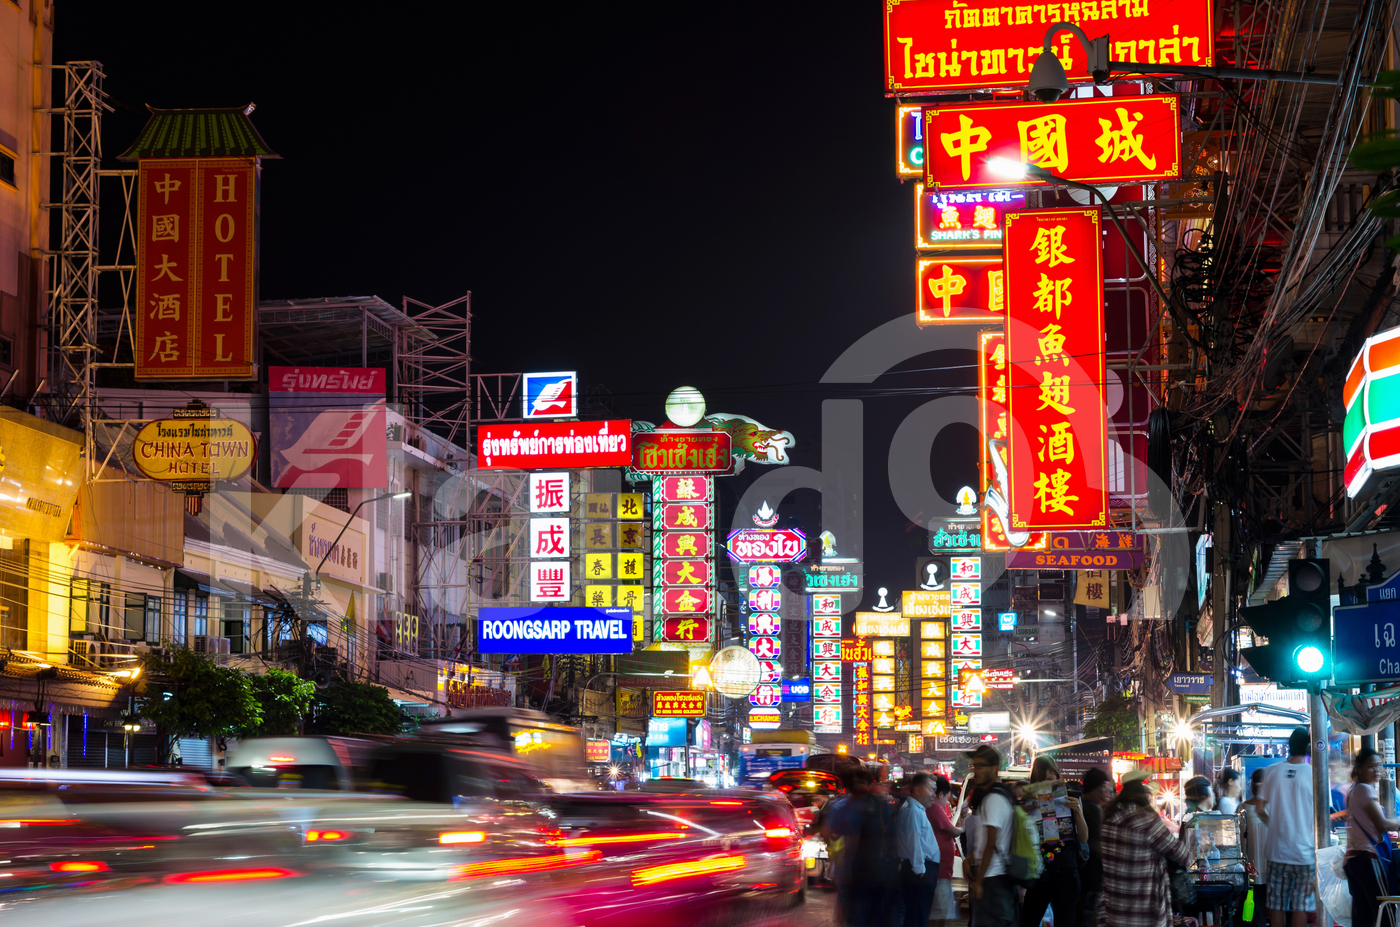 The China Town of thailand on Yaowarat Road at night time